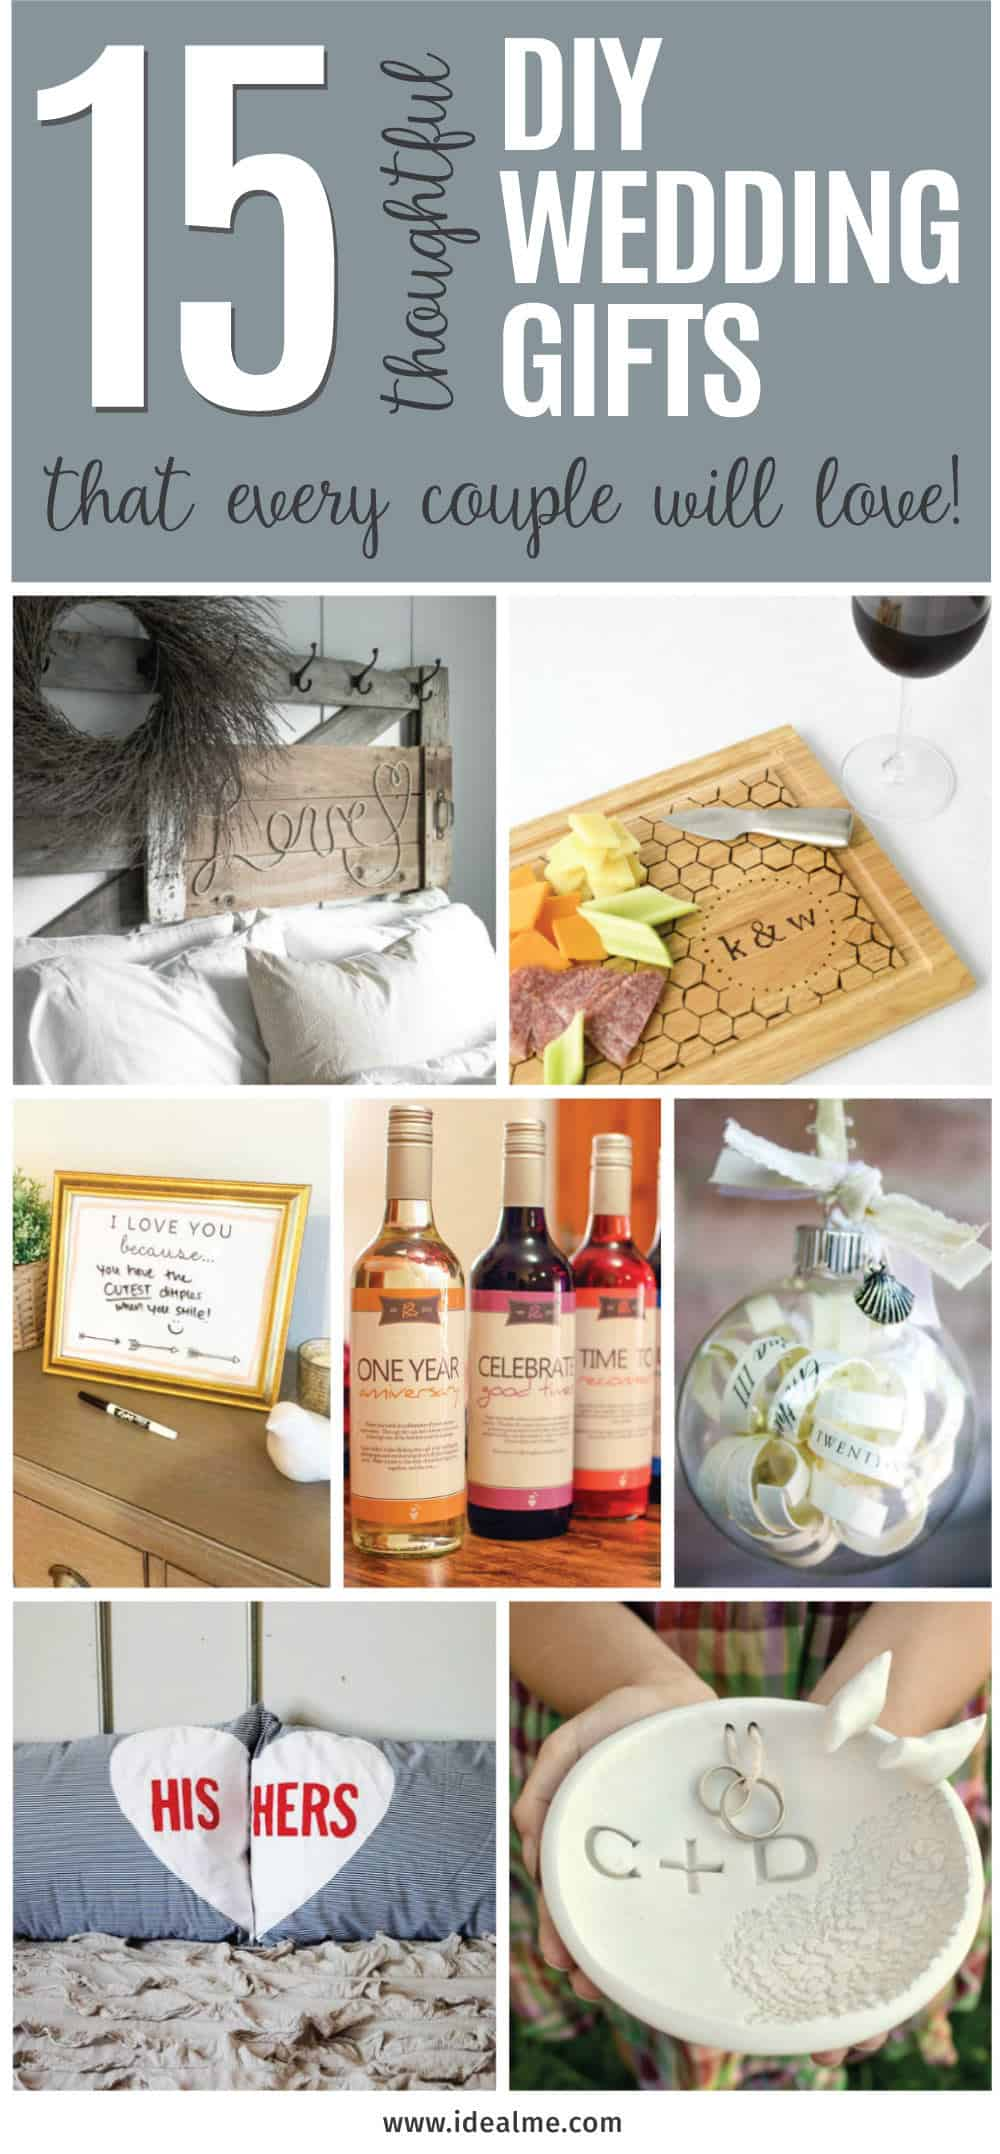 Are you struggling to figure out what to get your favorite newlyweds? Don't stress! We've got the perfect thoughtful DIY wedding gifts that every couple will love.